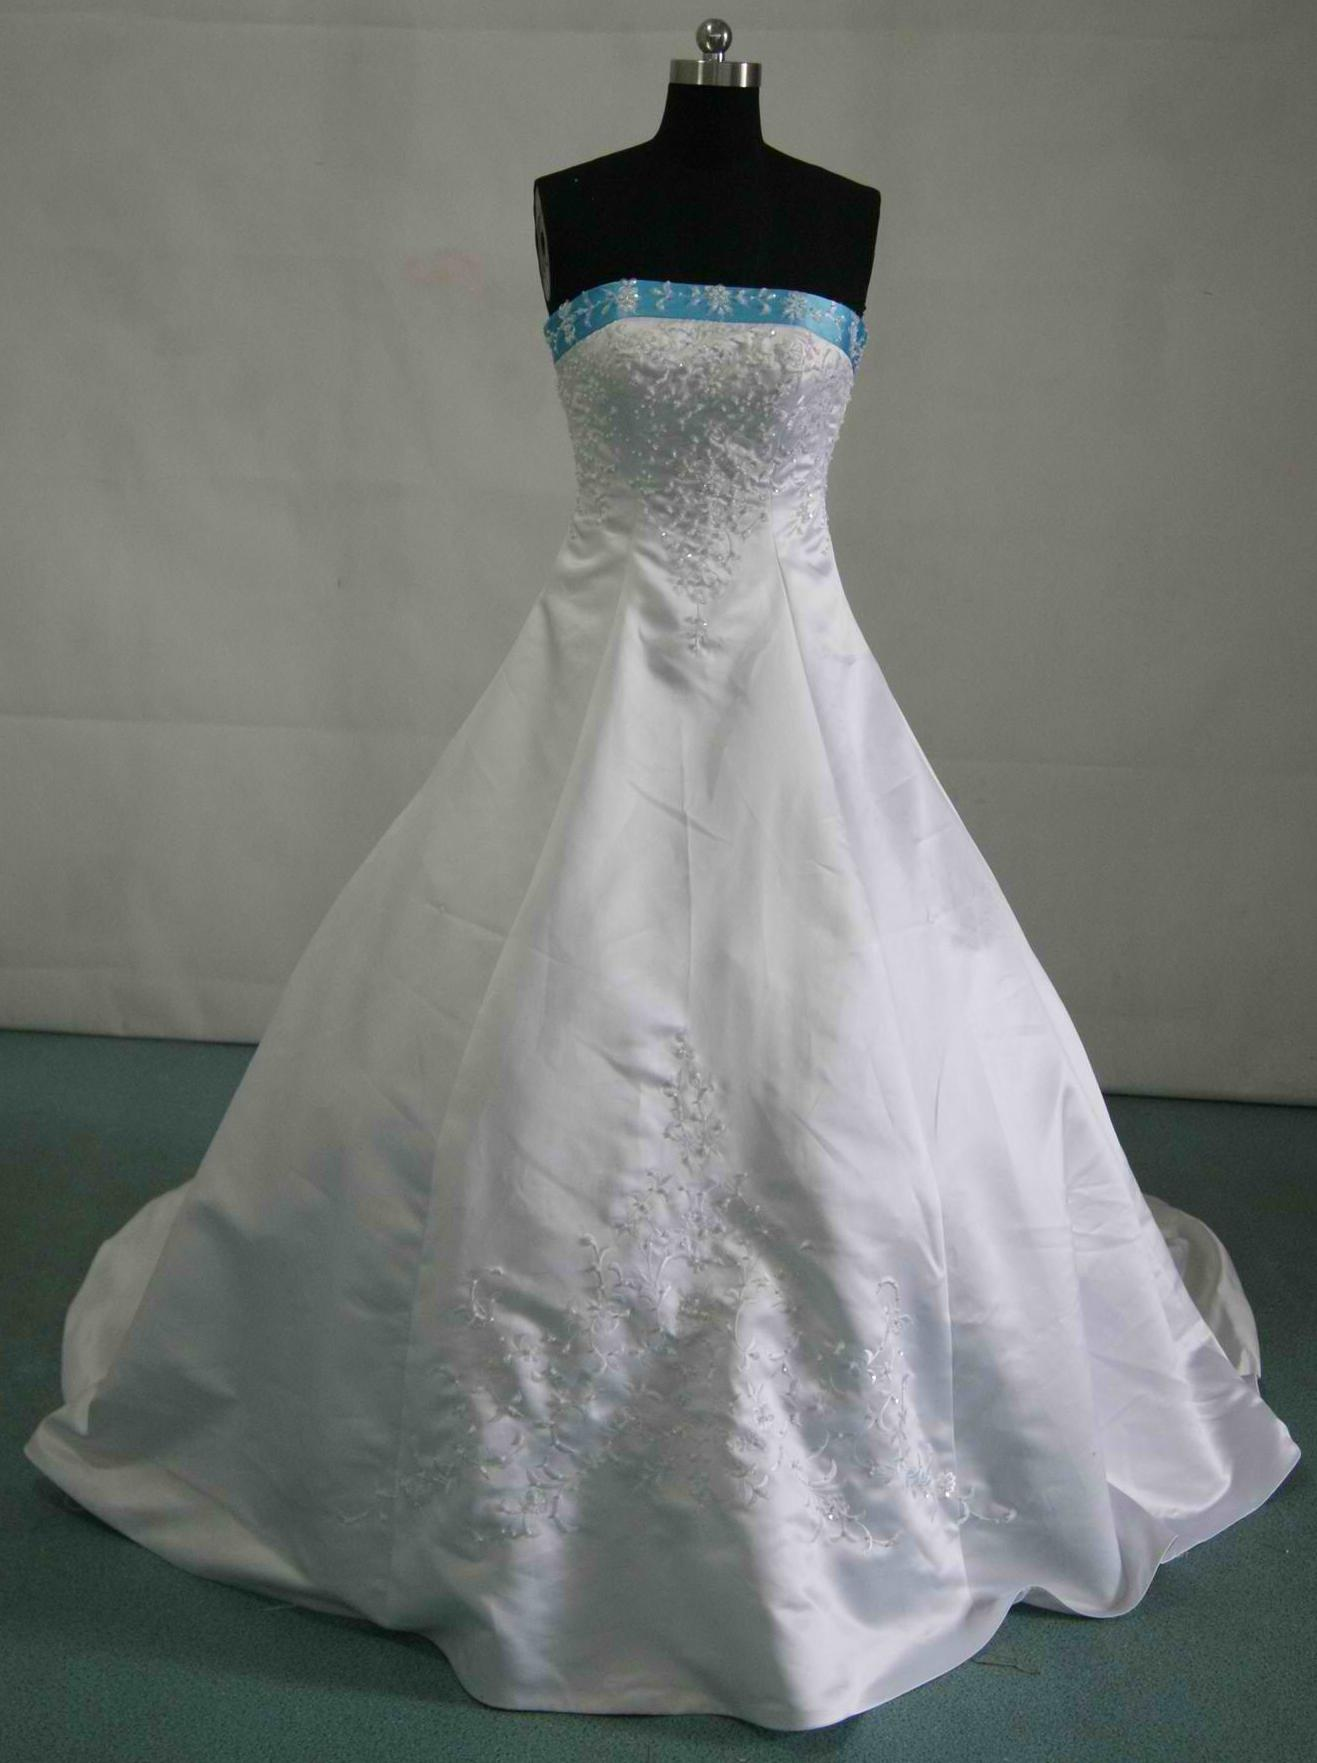 white and pool blue wedding gown